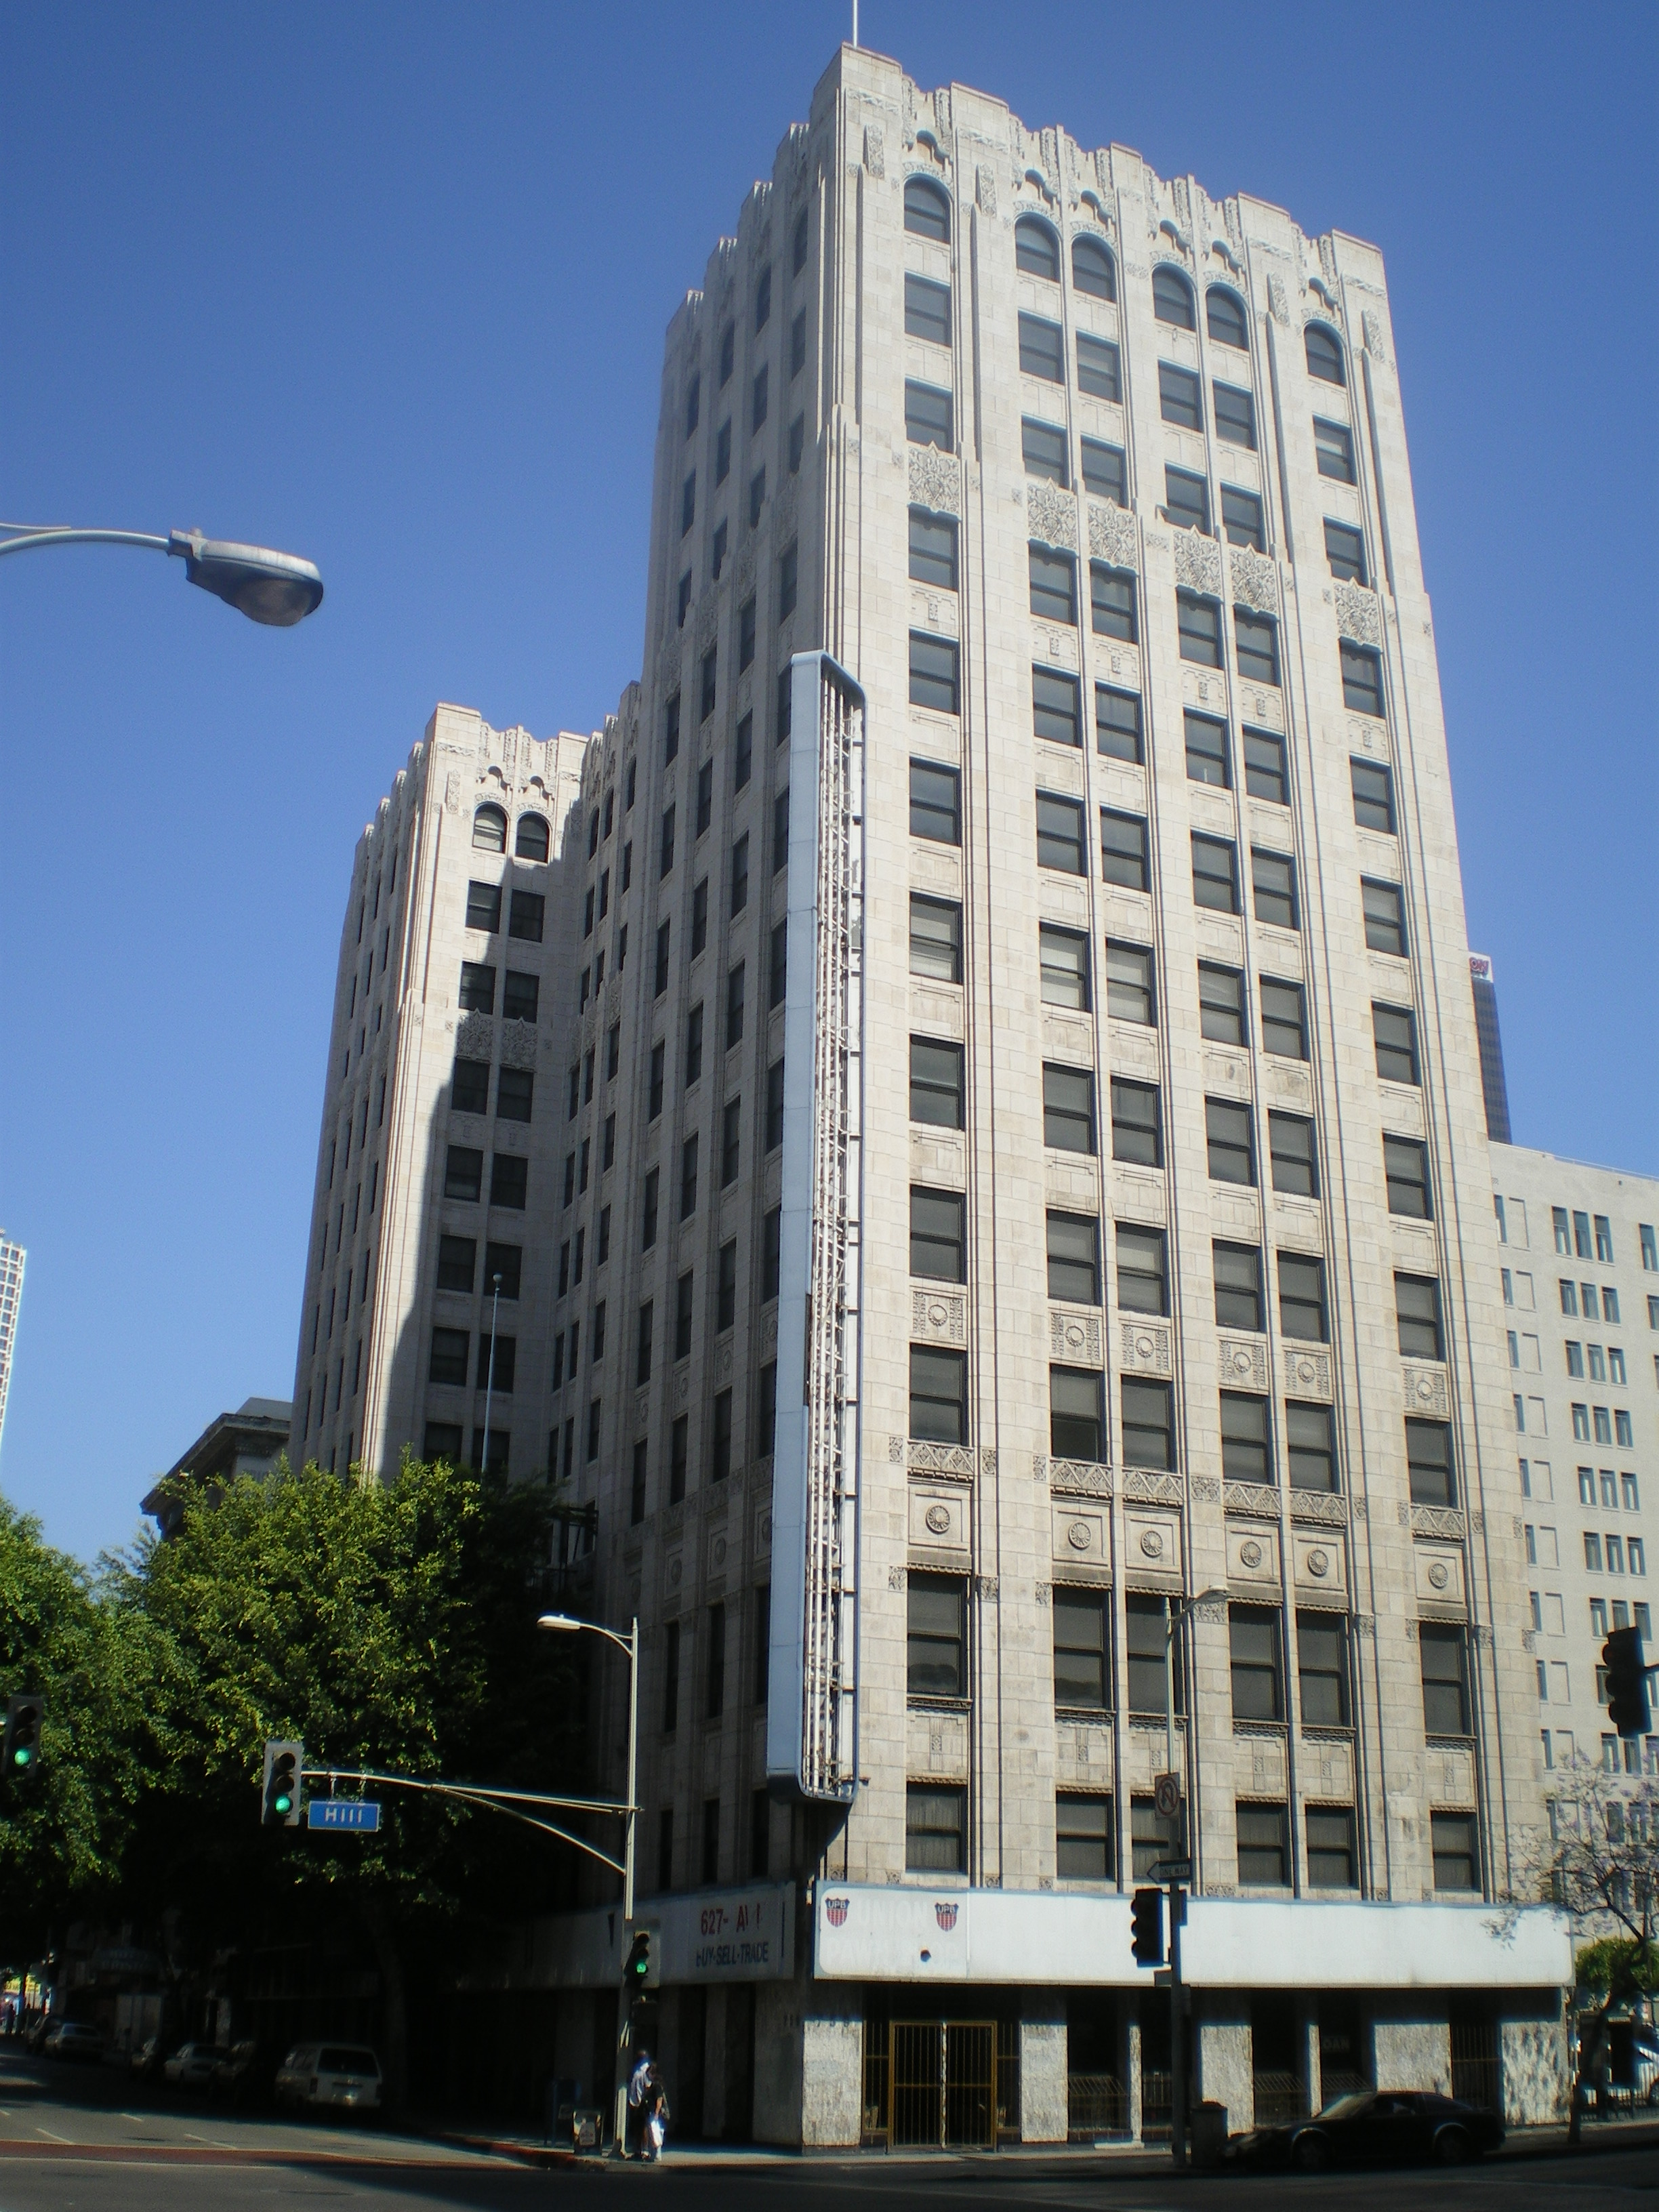 Filegarfield building jpg wikimedia commons